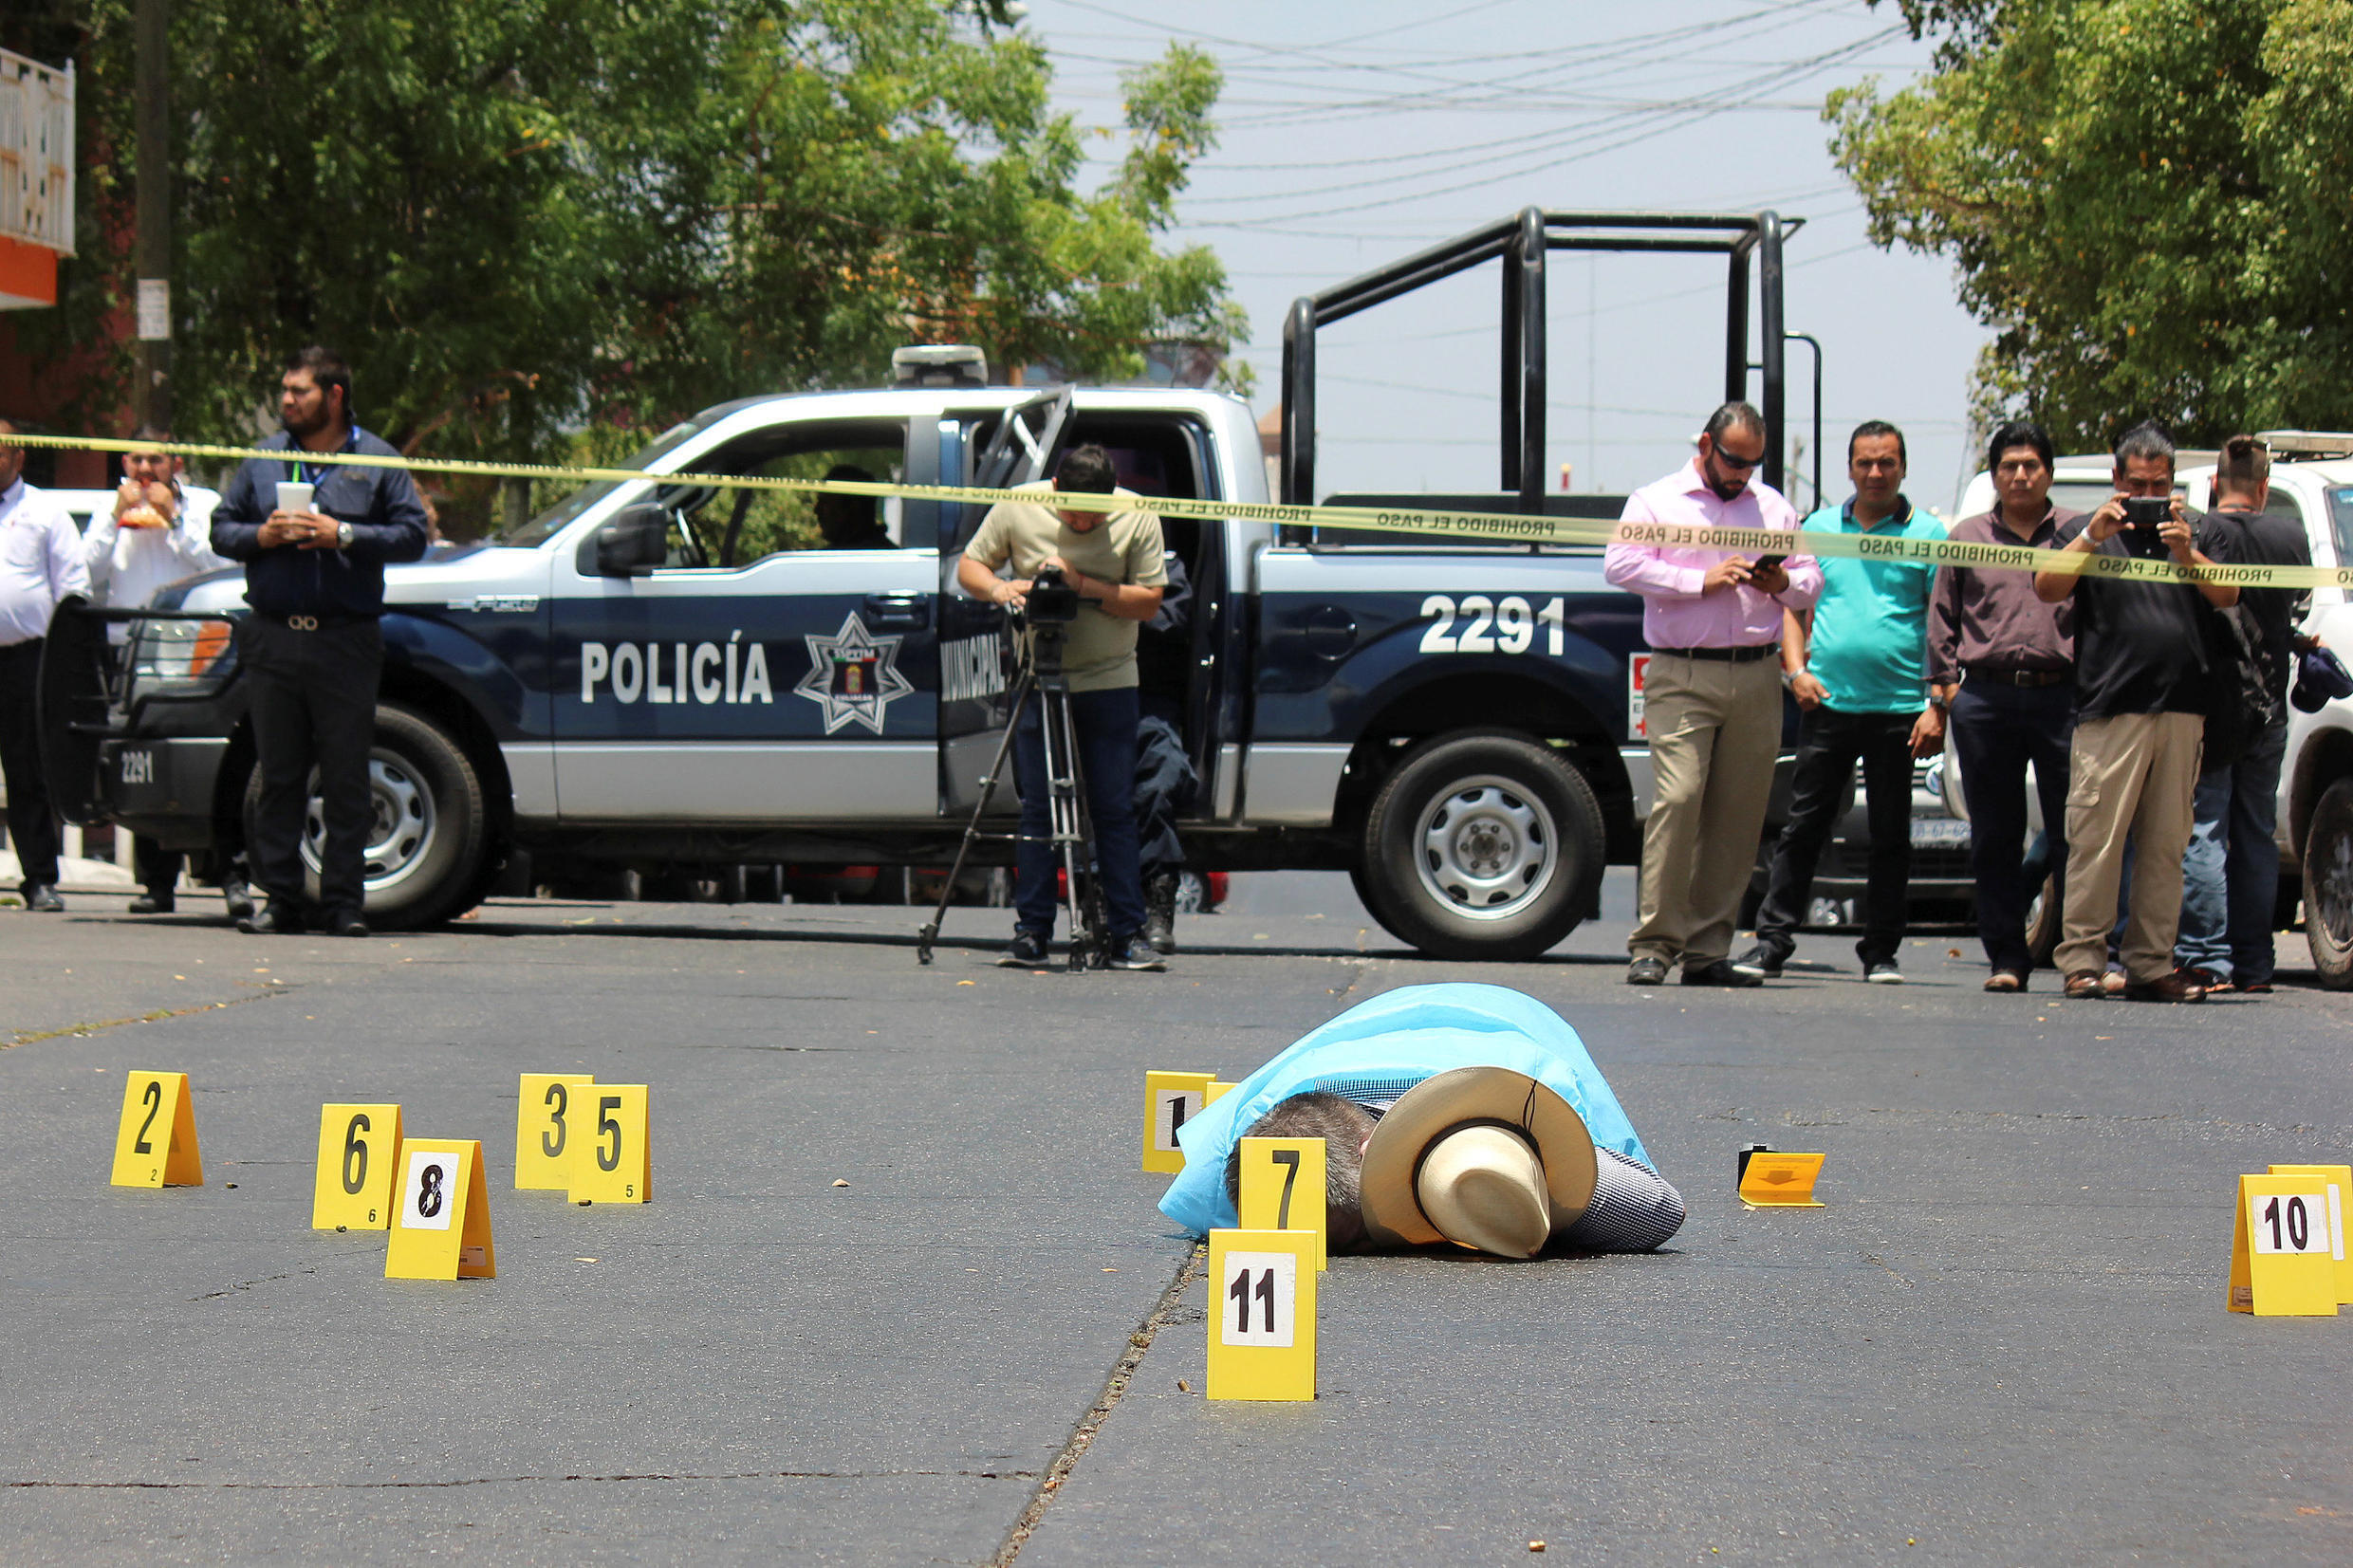 The crime scene in Culiacan, Mexico. Evidence is collected near the body of Mexican journalist Javier Valdez.